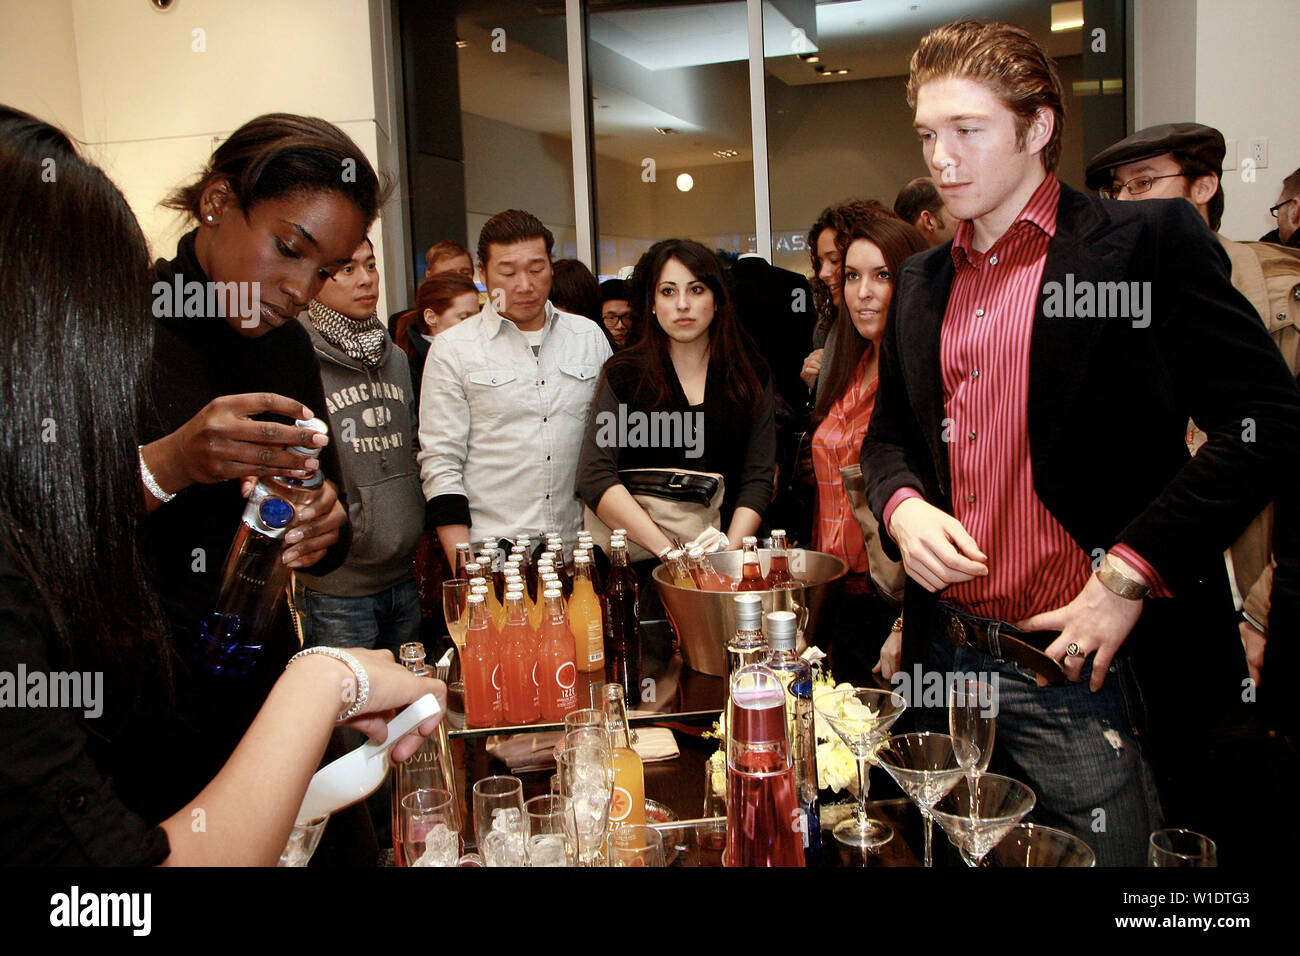 New York, USA. 5 February, 2009. Atmosphere at the opening of the Loris Diran Flagship Store. Credit: Steve Mack/Alamy - Stock Image